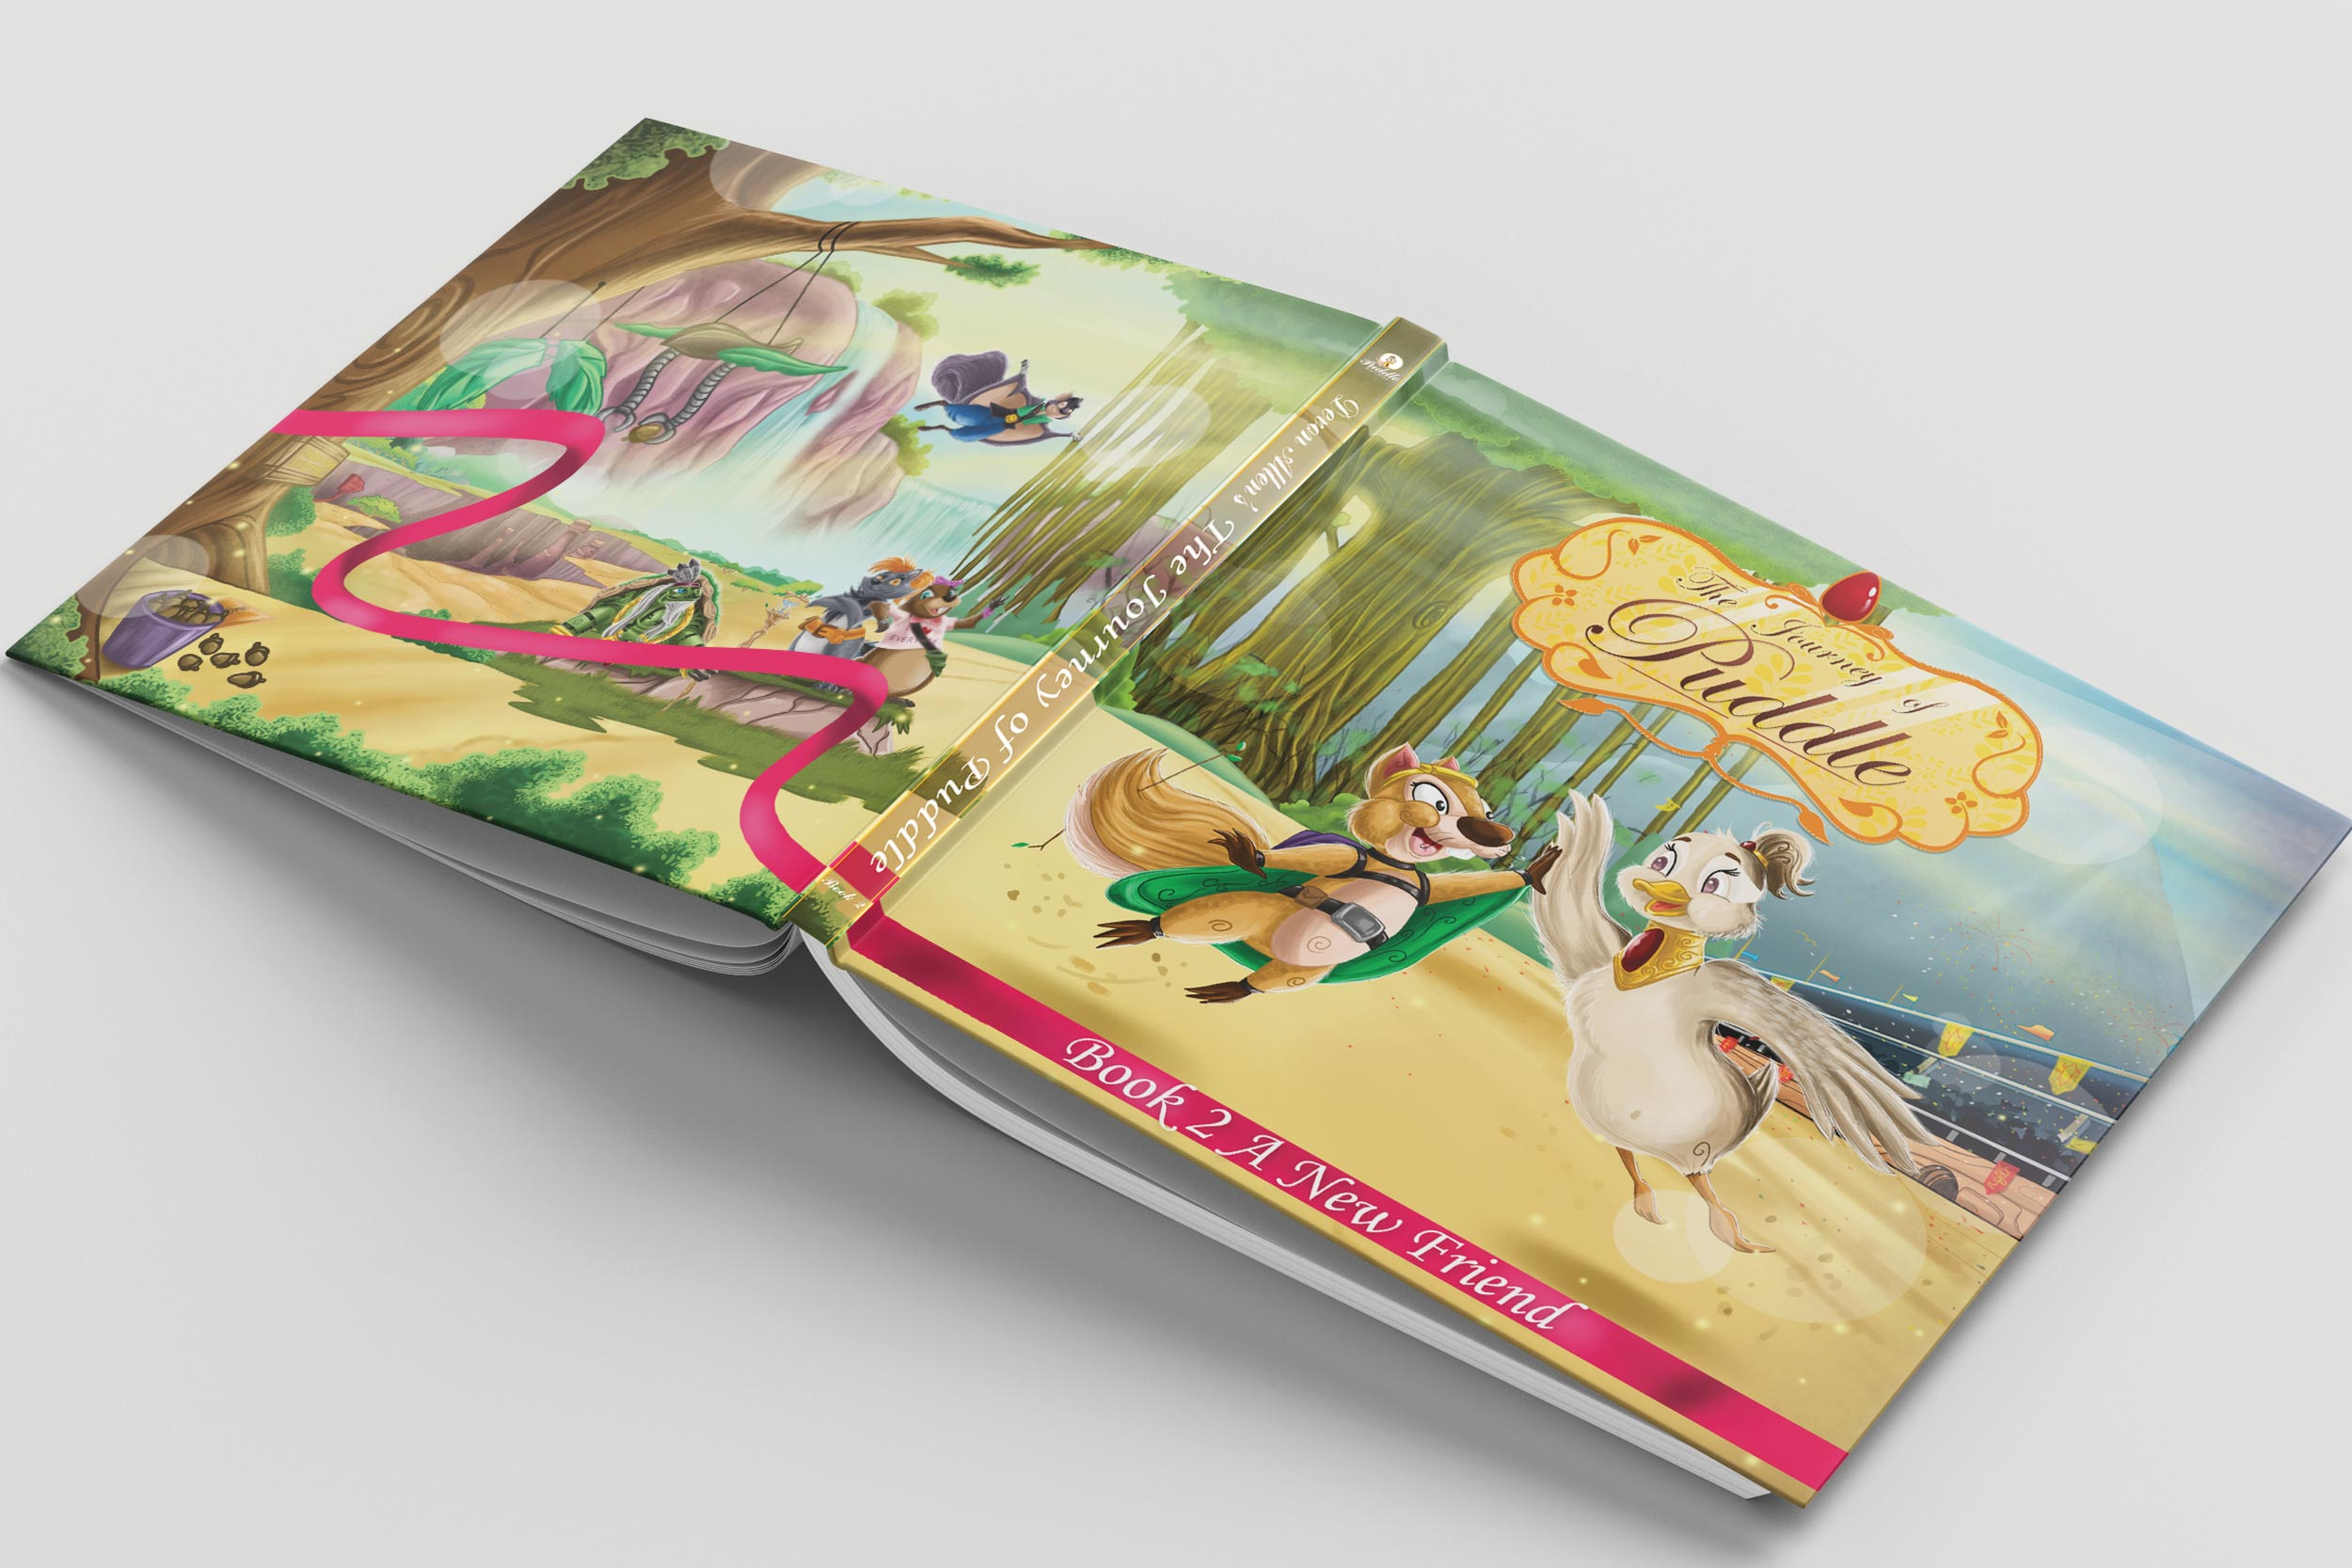 journey-of-puddle-christian-illustrated-children-books-book-2-look-inside-book-cover.jpg